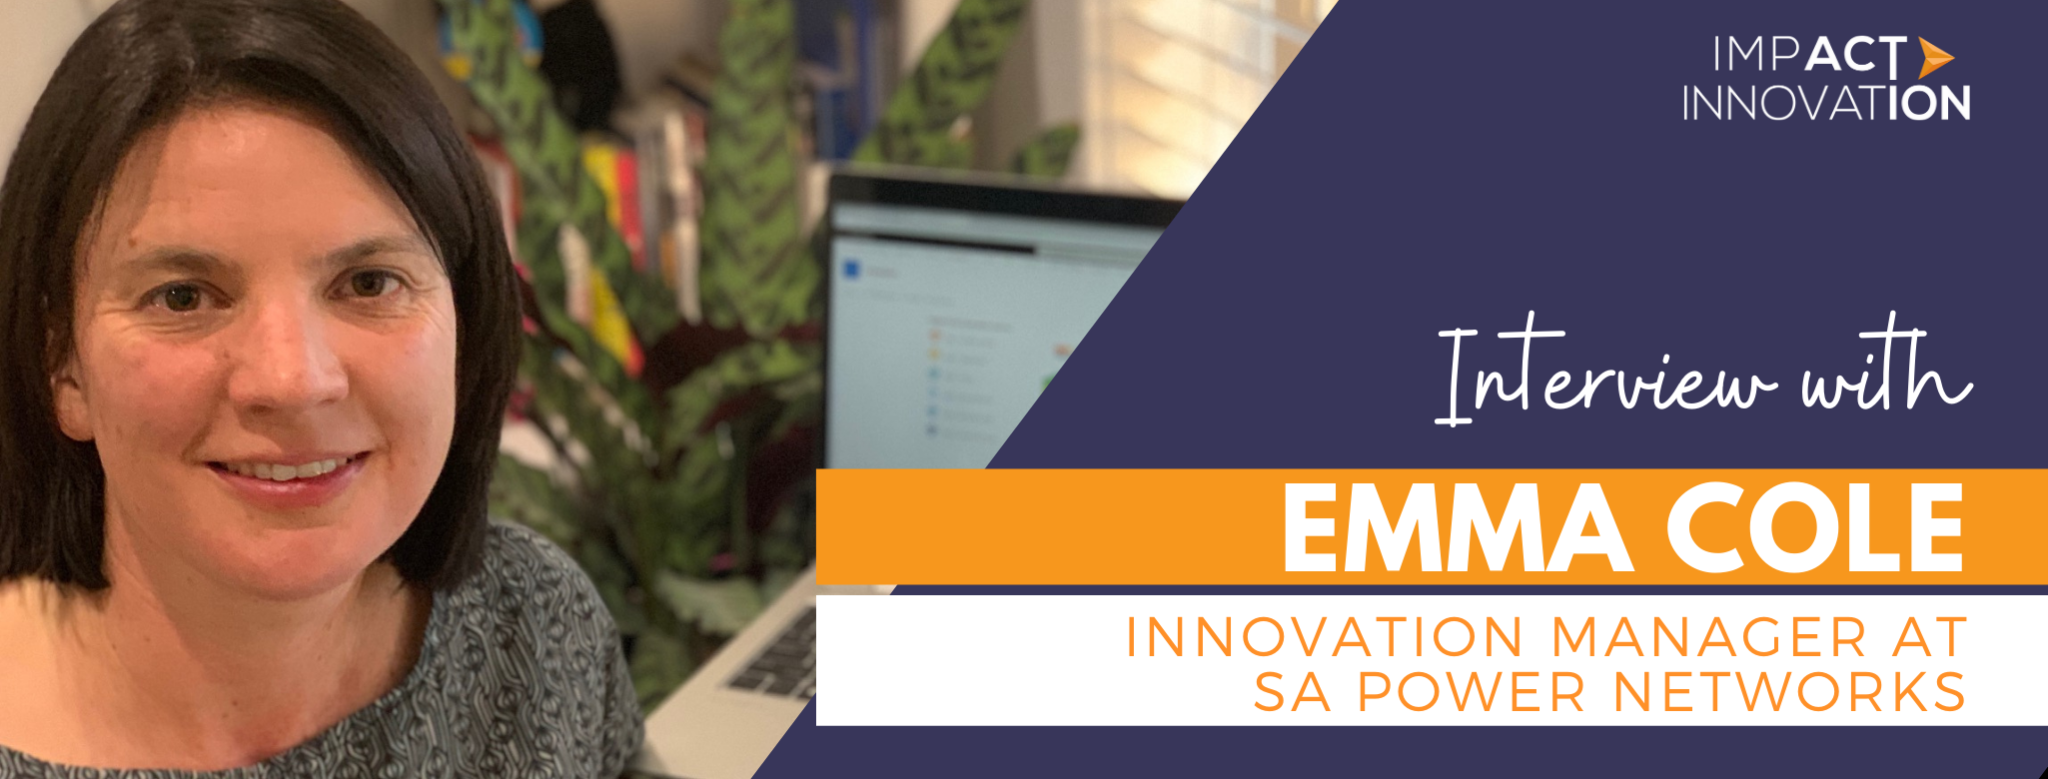 Interview with Emma Cole, Innovation Manager at SA Power Networks